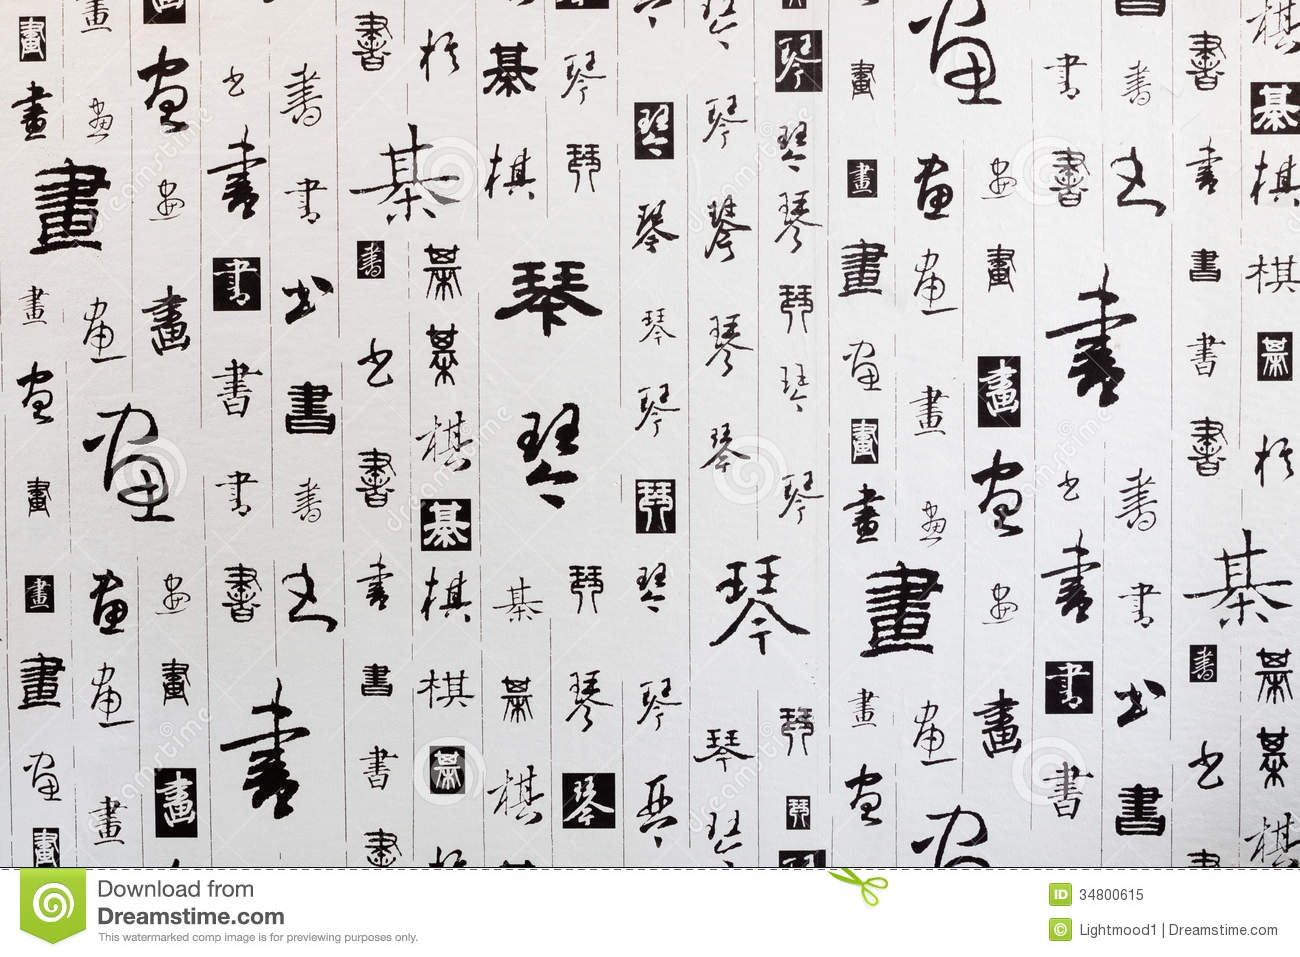 Chinese character wallpaper wallpapersafari pictures images and photos chinese calligraphy characters wallpaper biocorpaavc